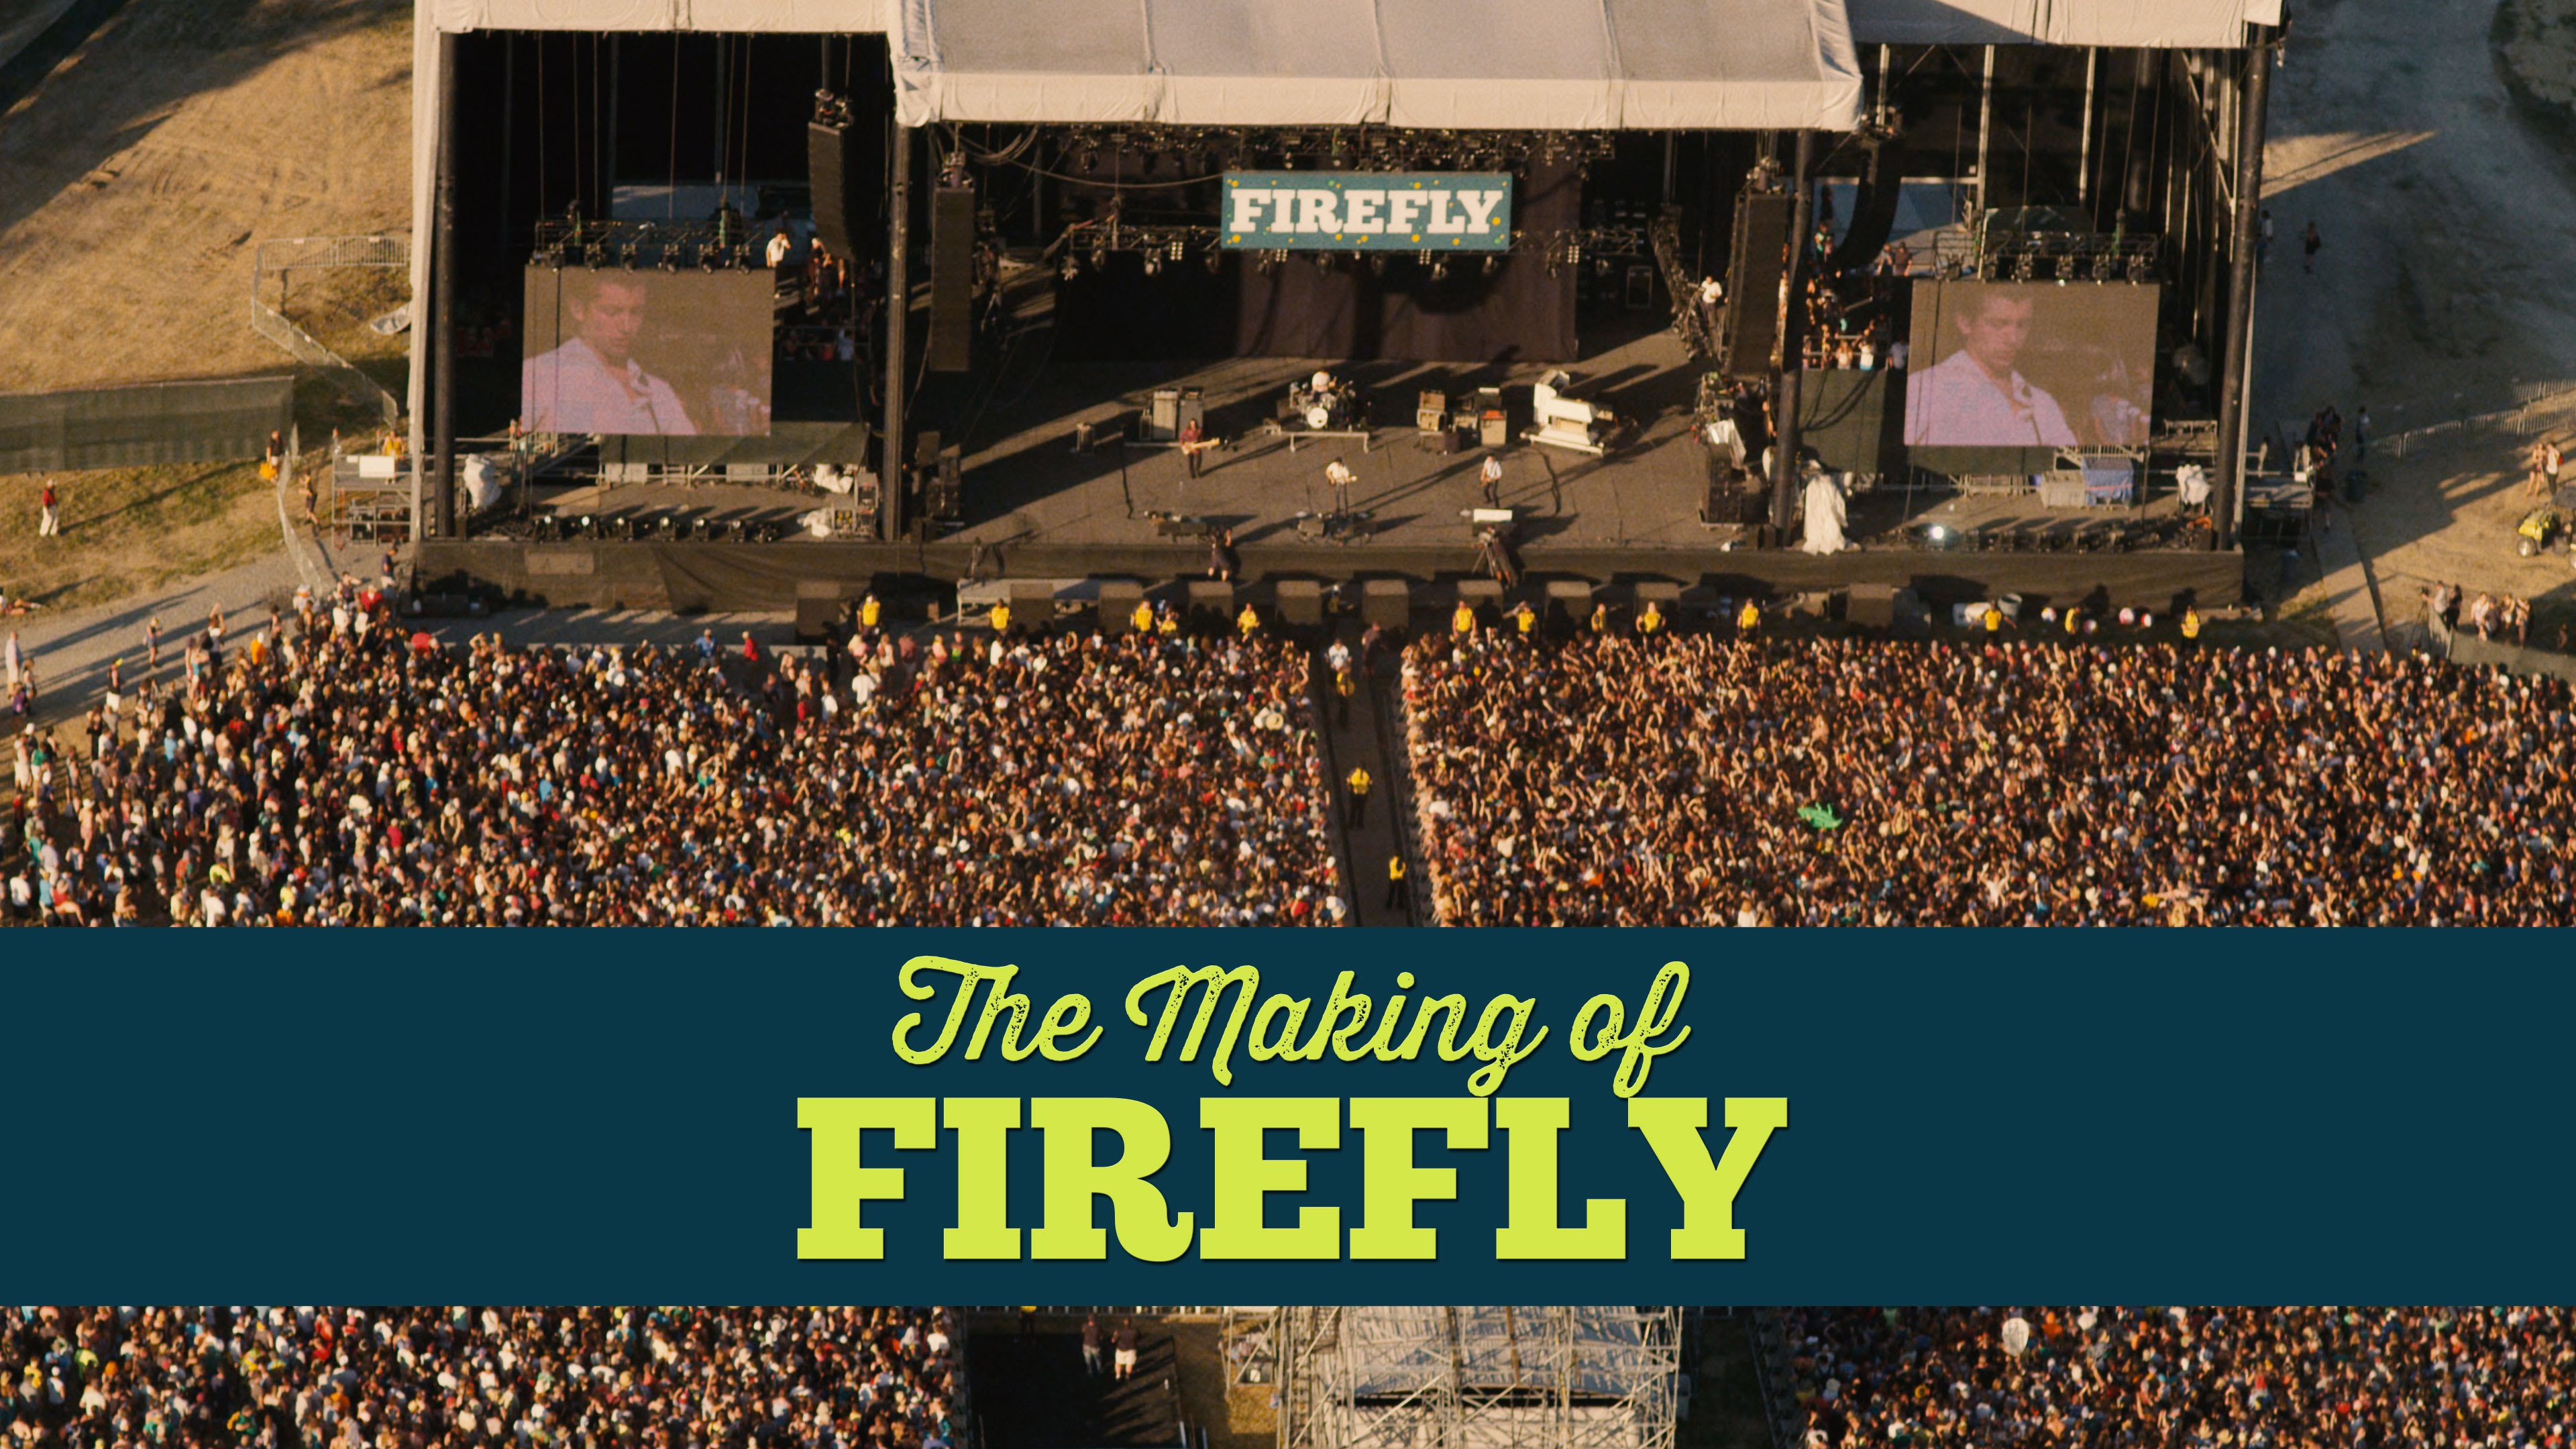 5 things to do other than listen to music at Firefly